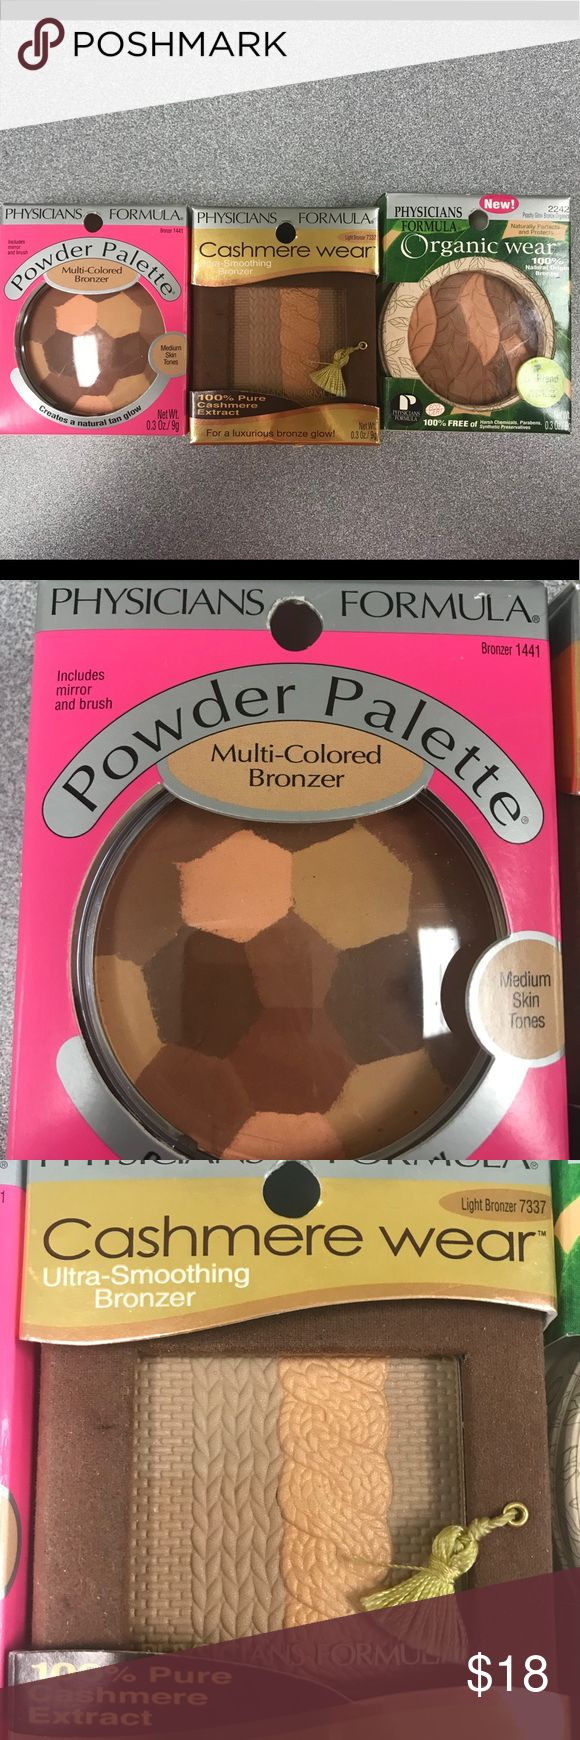 Collection of physicians Formula bronzers Price is for all 3 bronzers. New and never used. Physicians Formula Makeup Bronzer